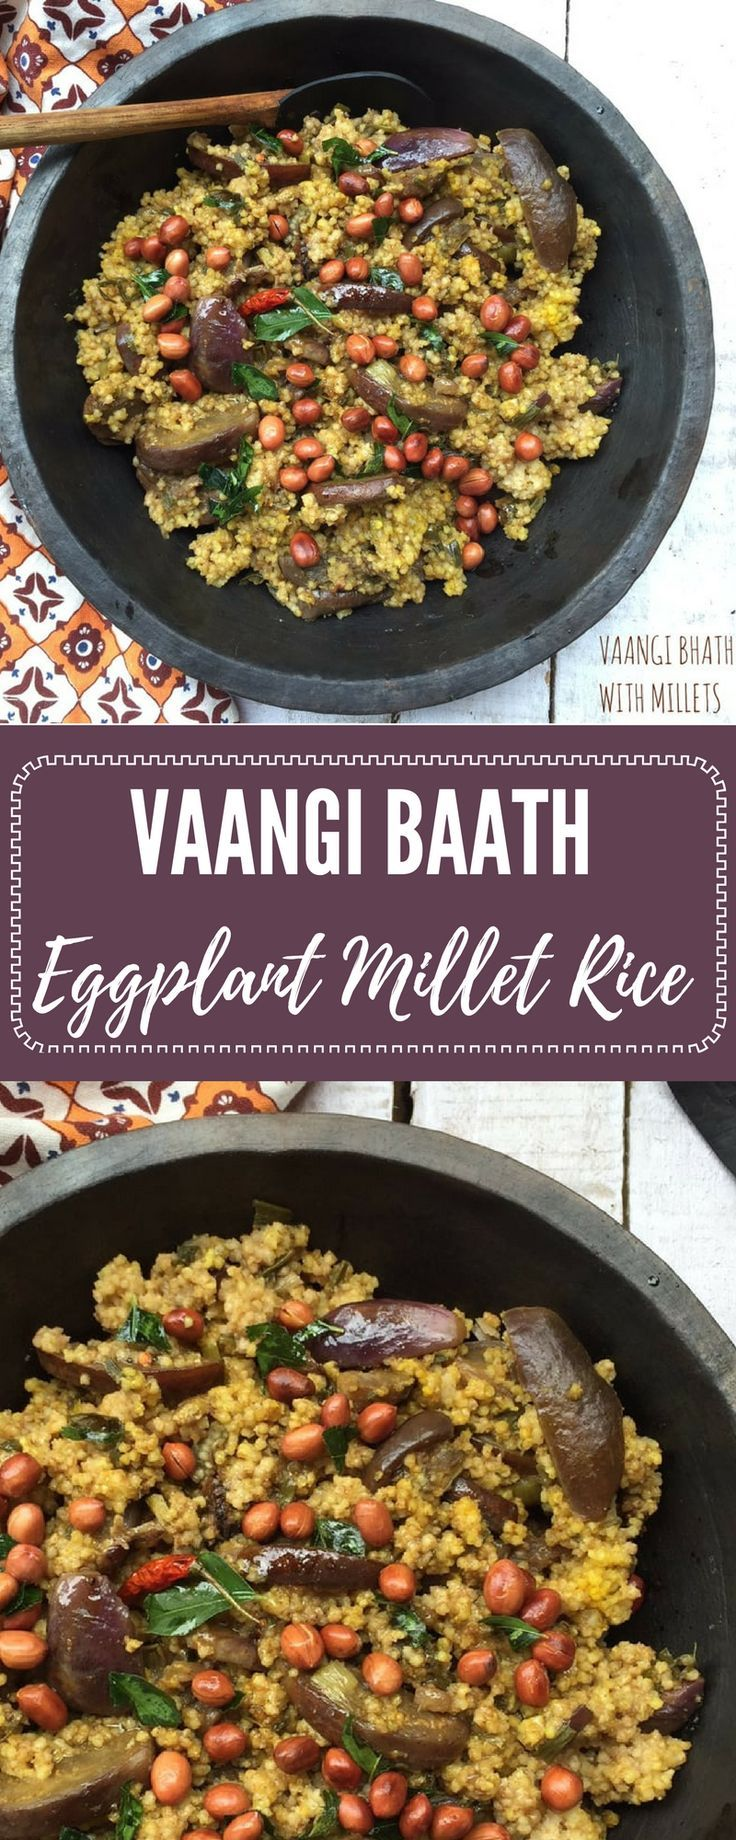 Best 25 recipes with millet rice ideas on pinterest millet best 25 recipes with millet rice ideas on pinterest millet vegan recipe cooking rice with quinoa and lemon brown rice recipe forumfinder Choice Image